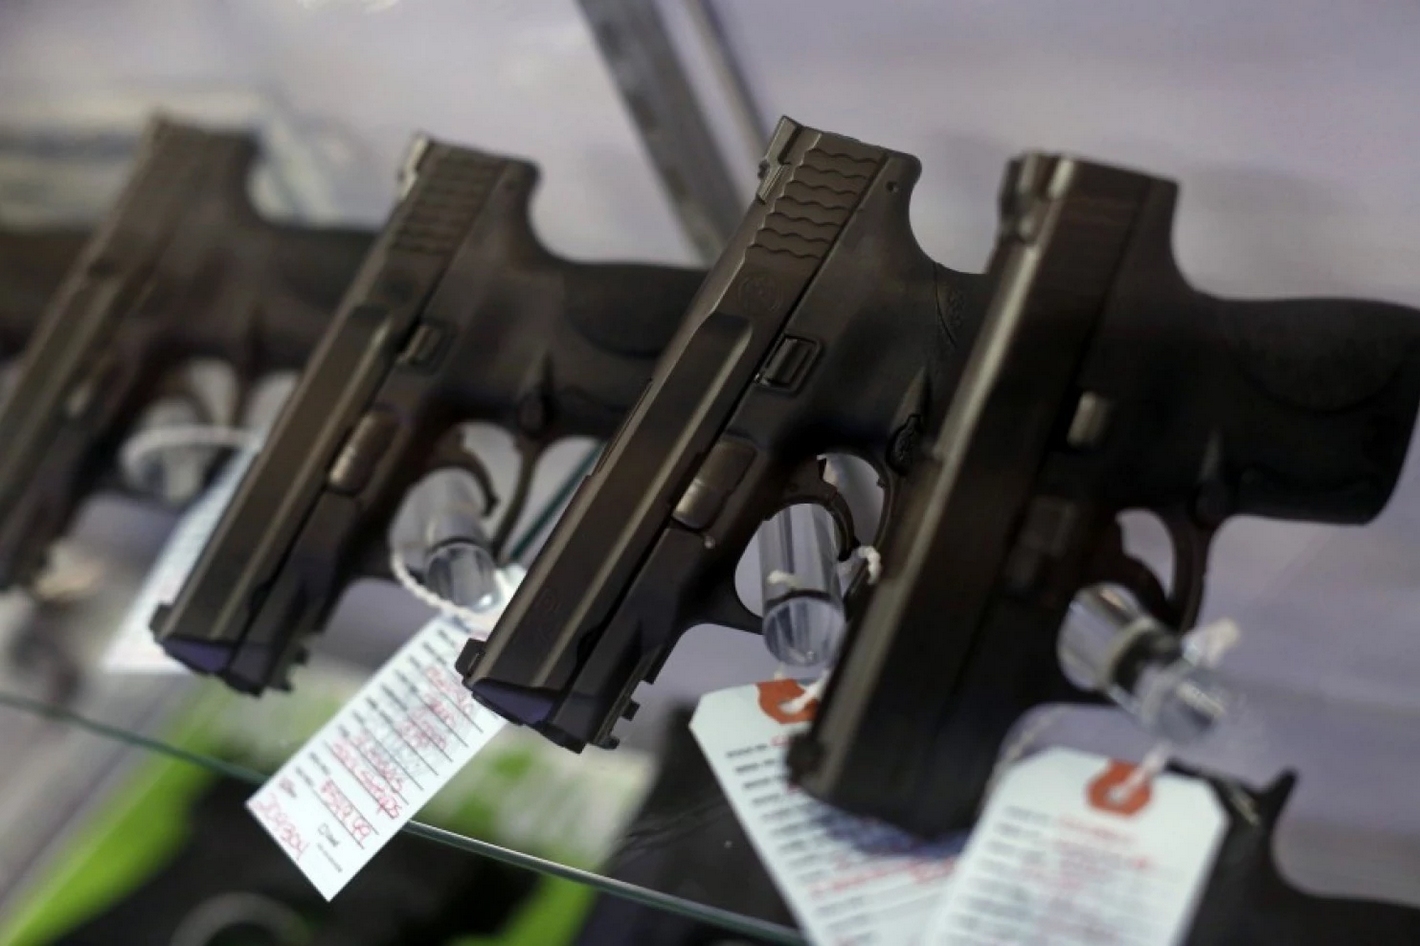 11 essential facts about guns and mass shootings in America